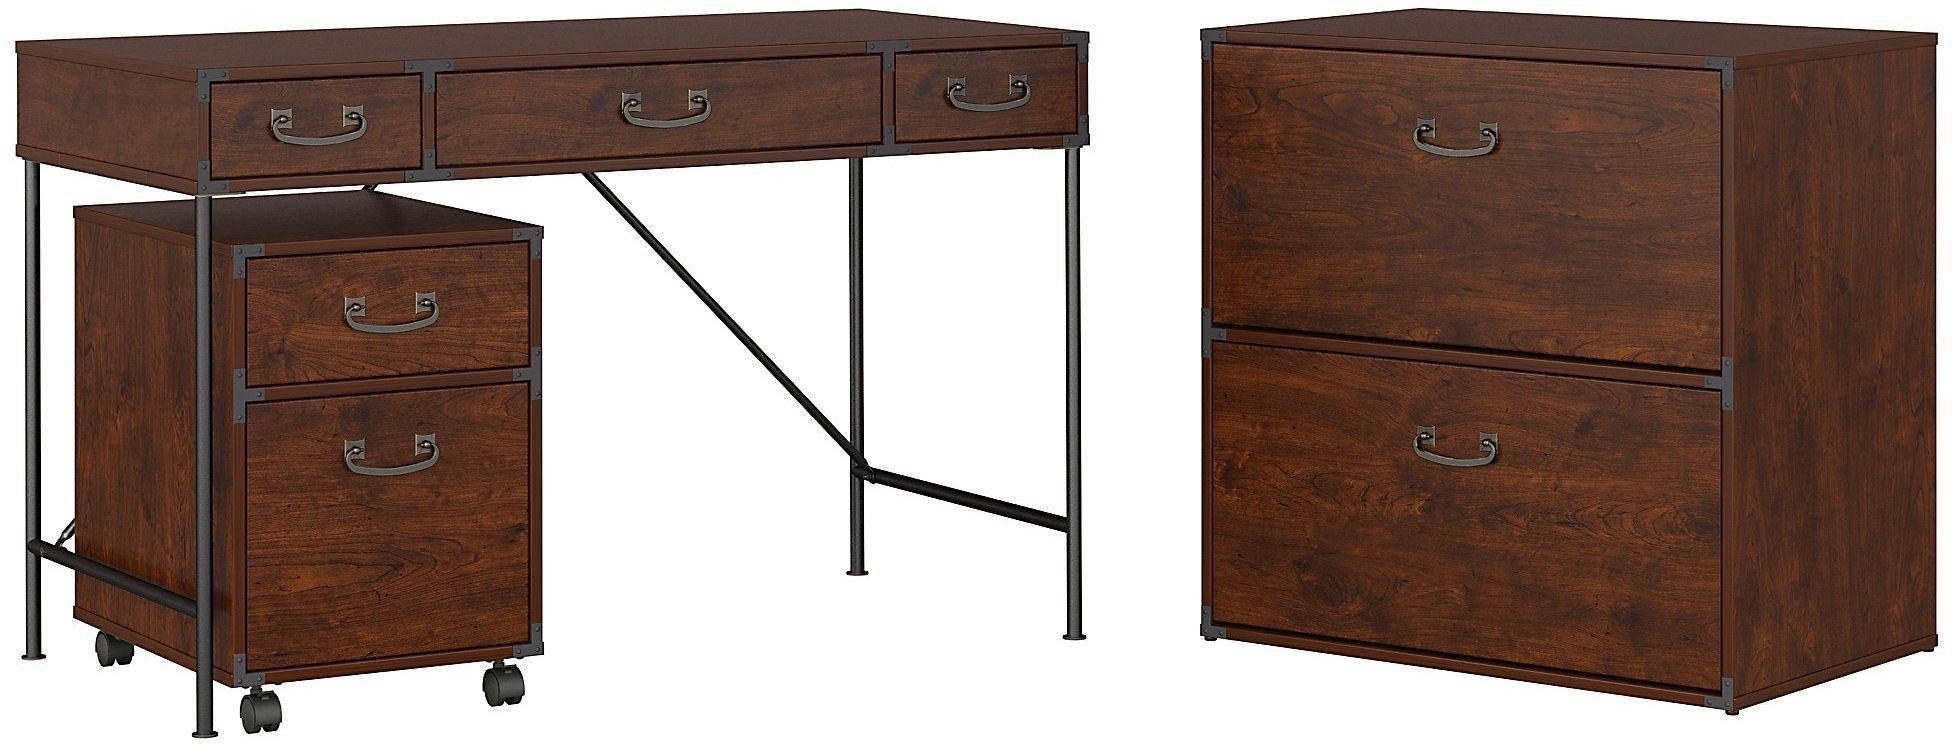 Ironworks coastal cherry quot writing desk with drawer